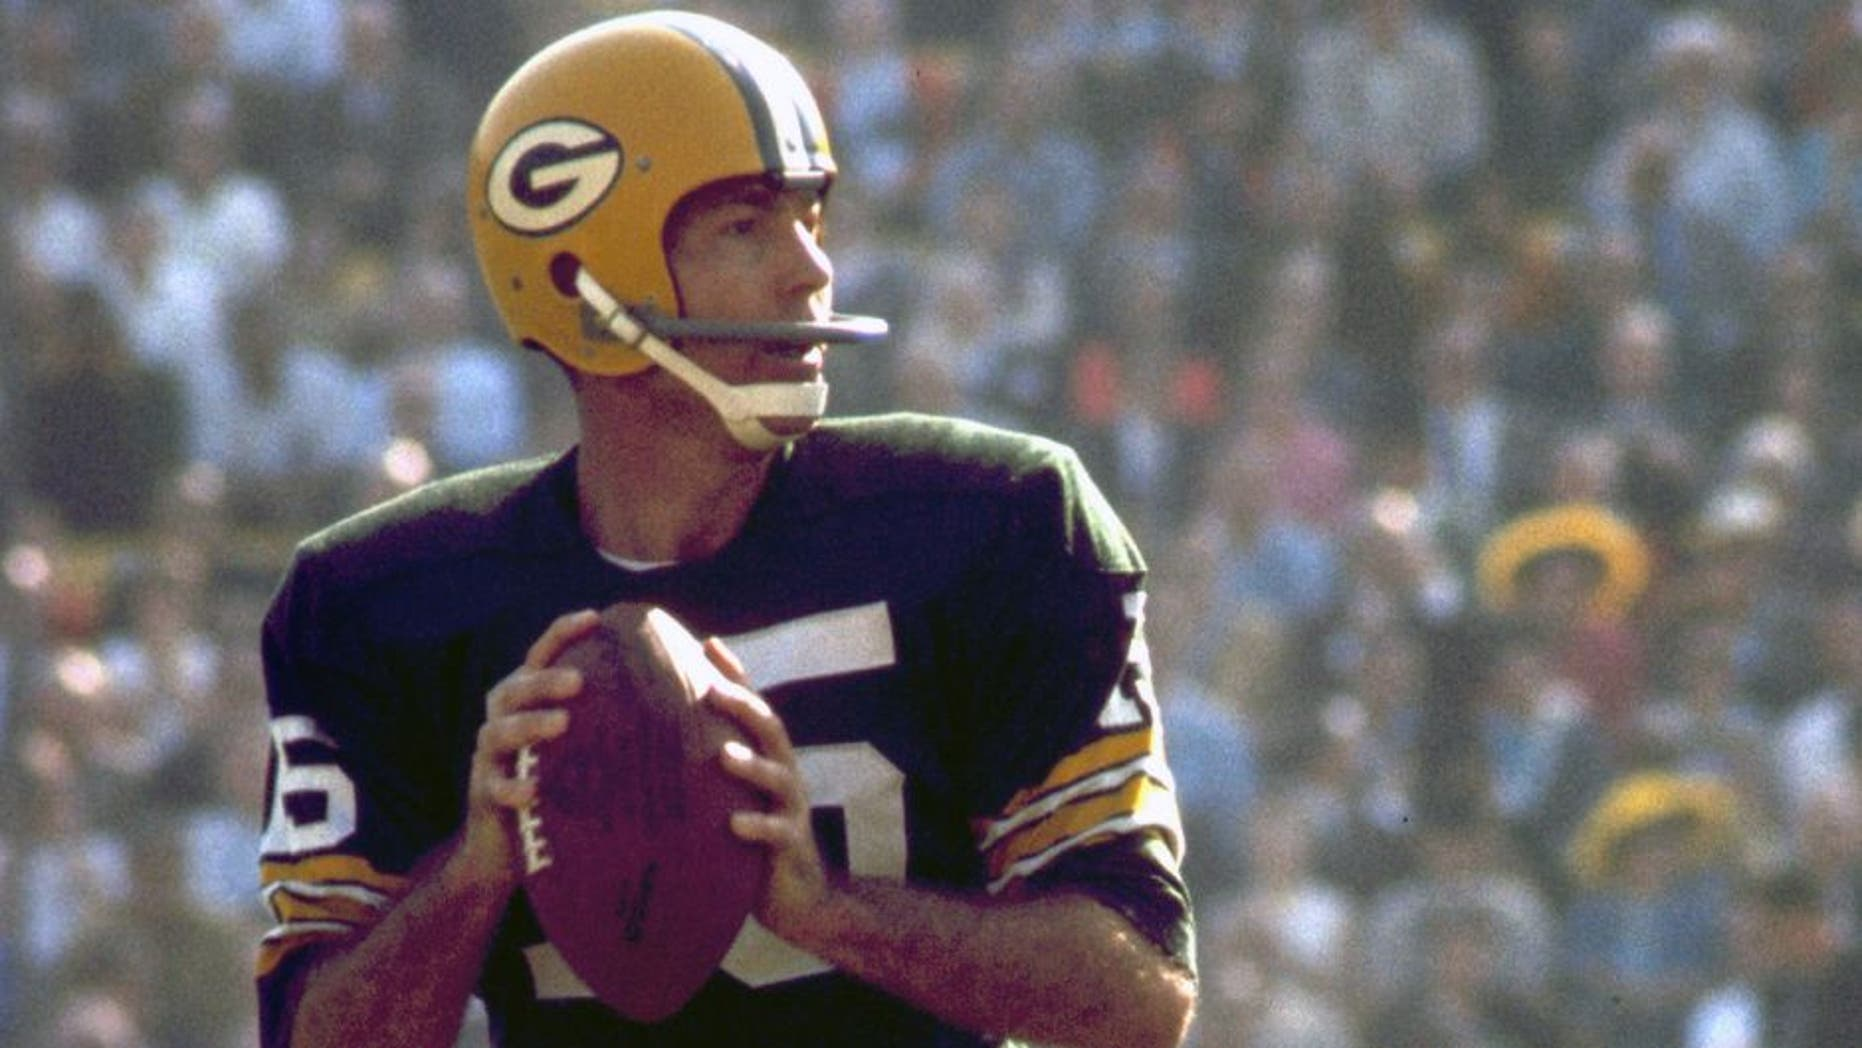 Green Bay Packers Hall of Fame quarterback Bart Starr (15) surveys the field during Super Bowl I, a 35-10 victory over the Kansas City Chiefs on January 15, 1967, at the Los Angeles Memorial Coliseum in Los Angeles, California. (Photo by James Flores/Getty Images)